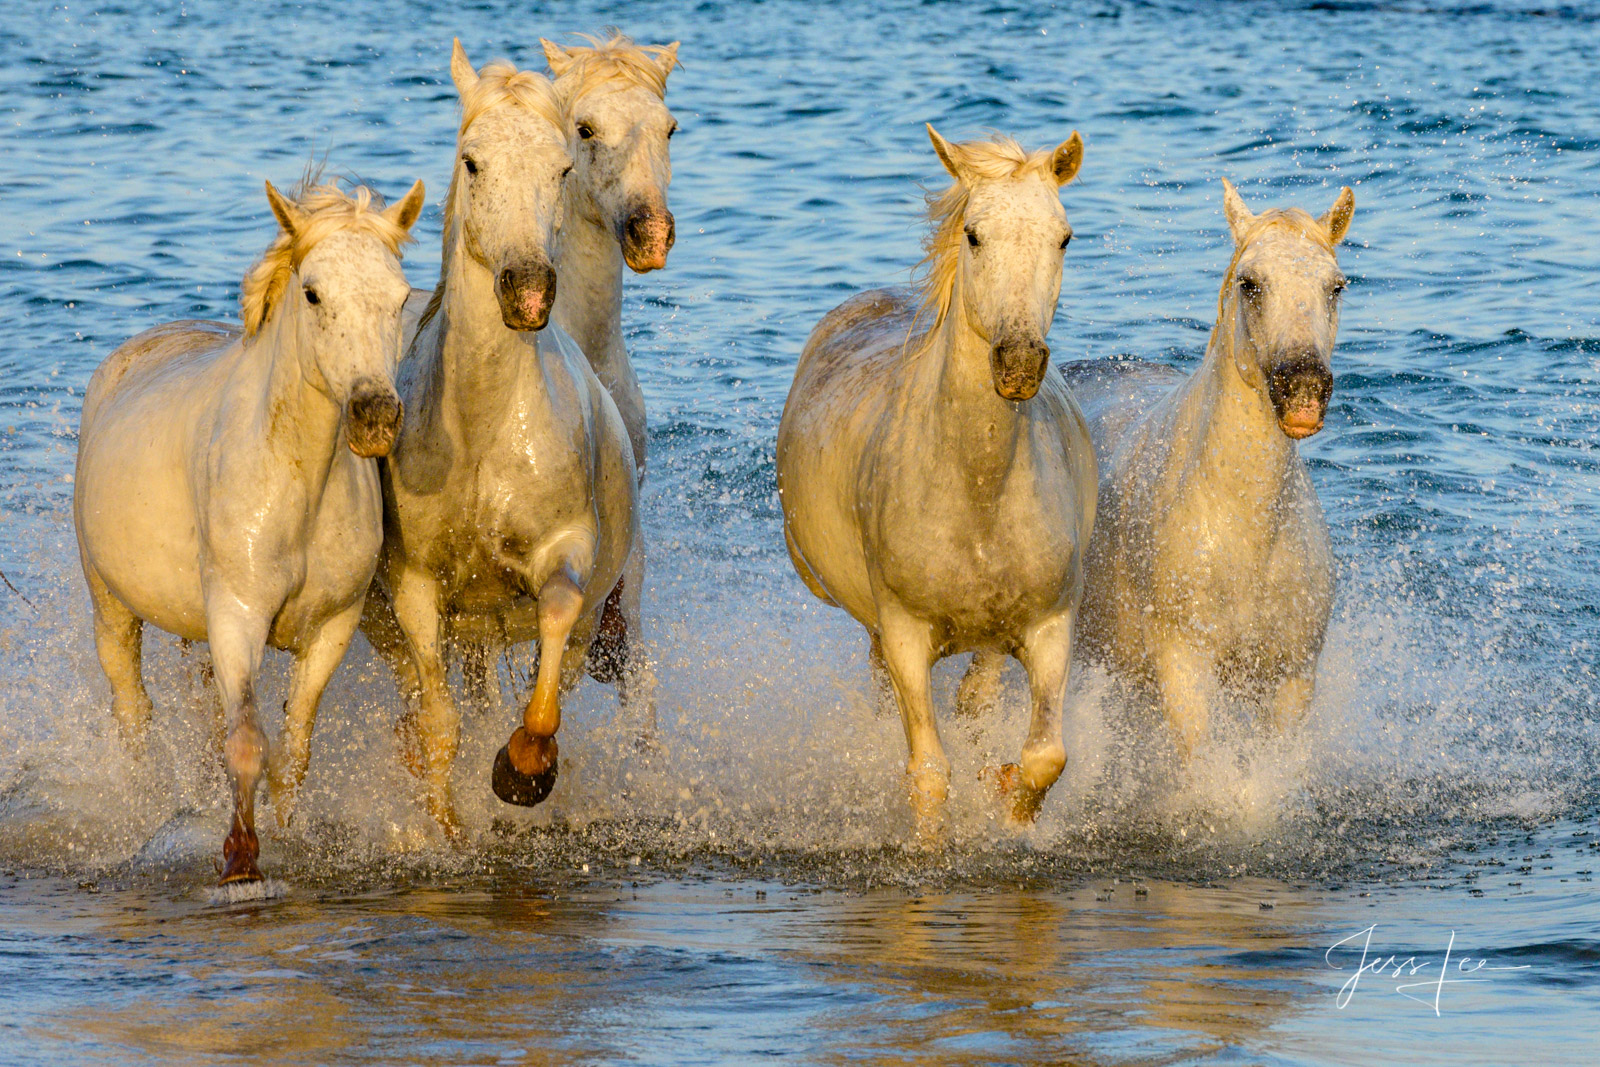 Limited Edition of 200 prints of White Horses running in Water